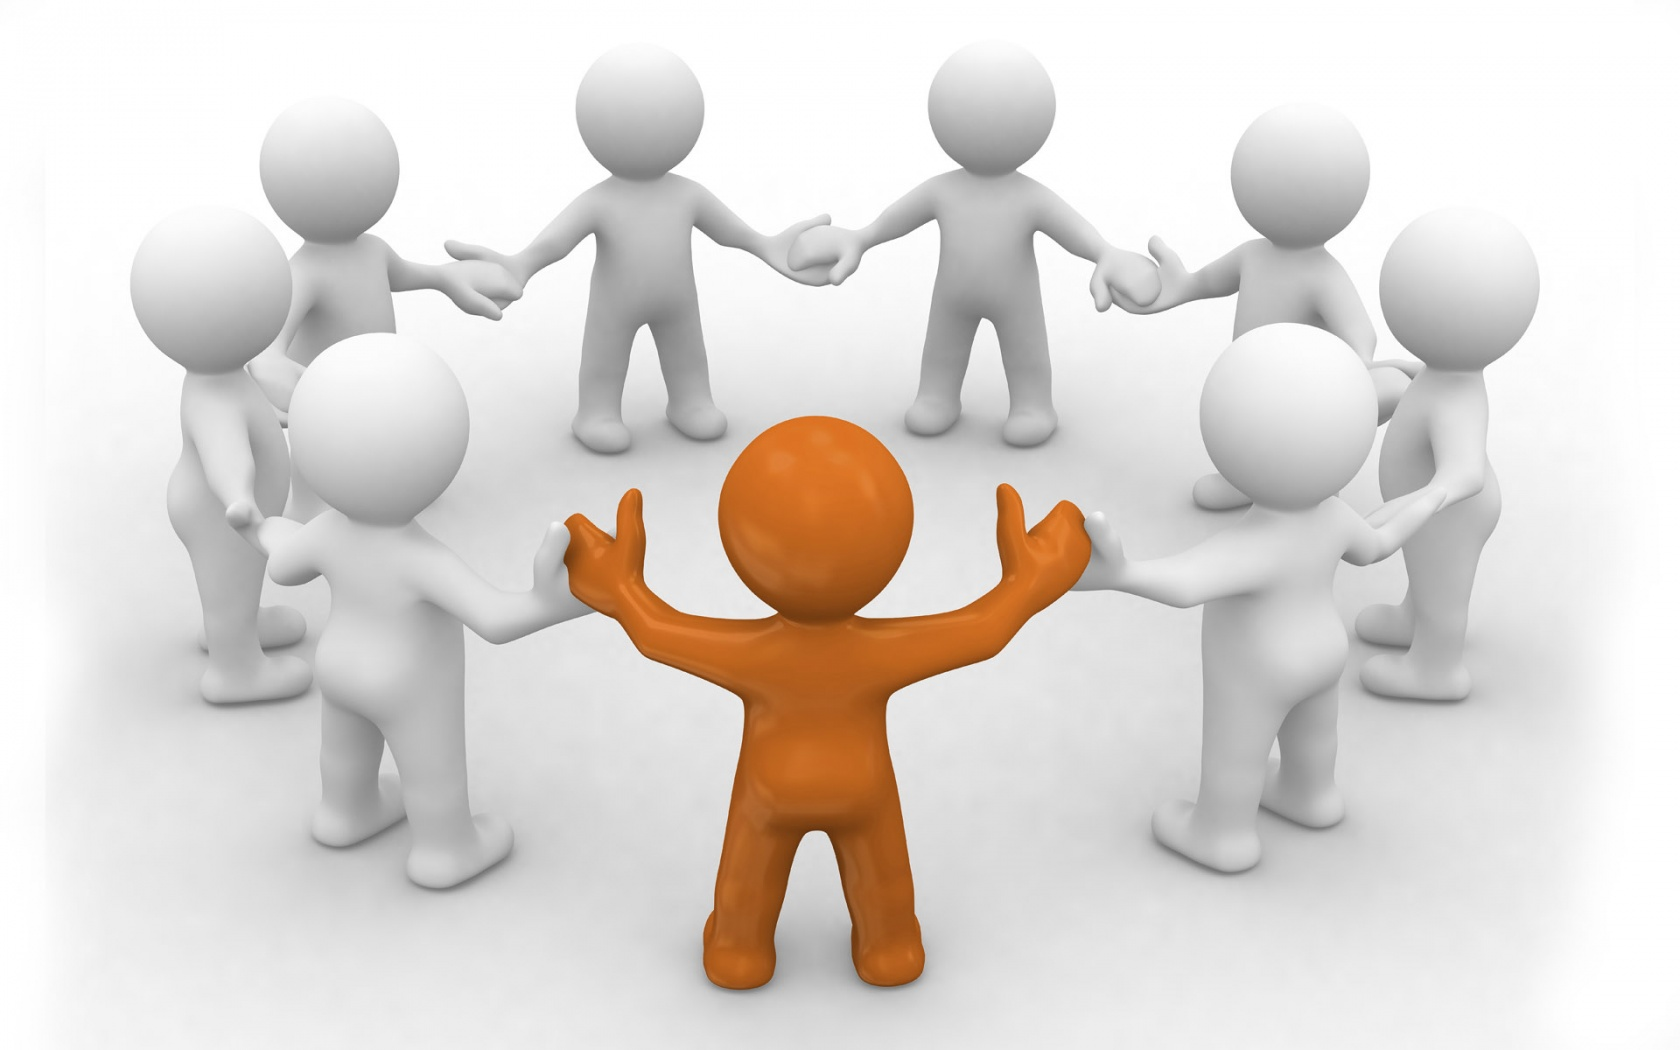 Animated Clipart For Powerpoint Free Animated Clipart For Powerpoint